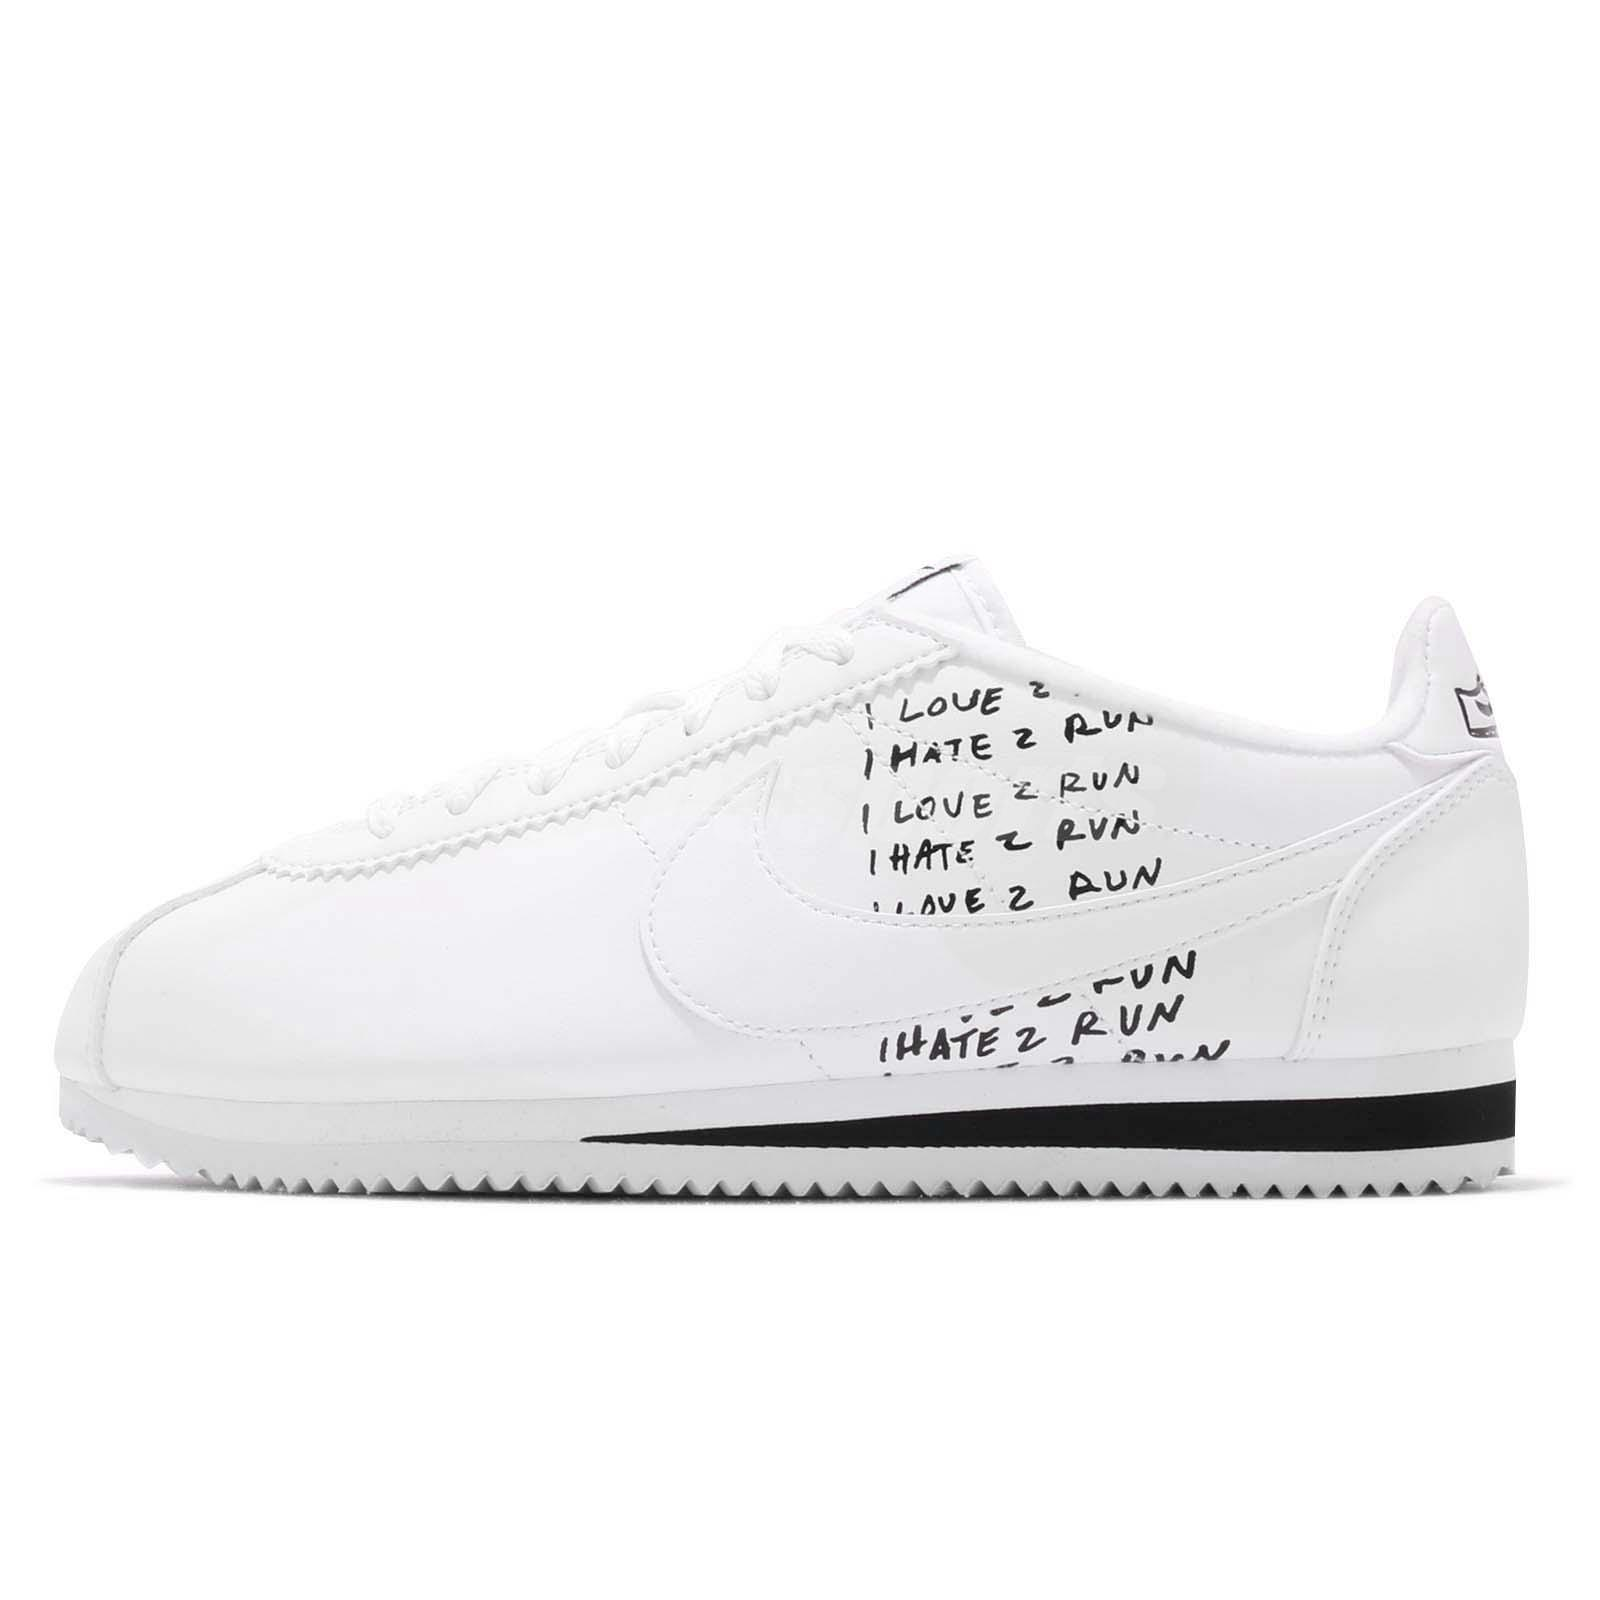 the best attitude 42f8d 5da4f Details about Nike Classic Cortez X Nathan Bell White Black Mens Retro  Running Shoe BV8165-100